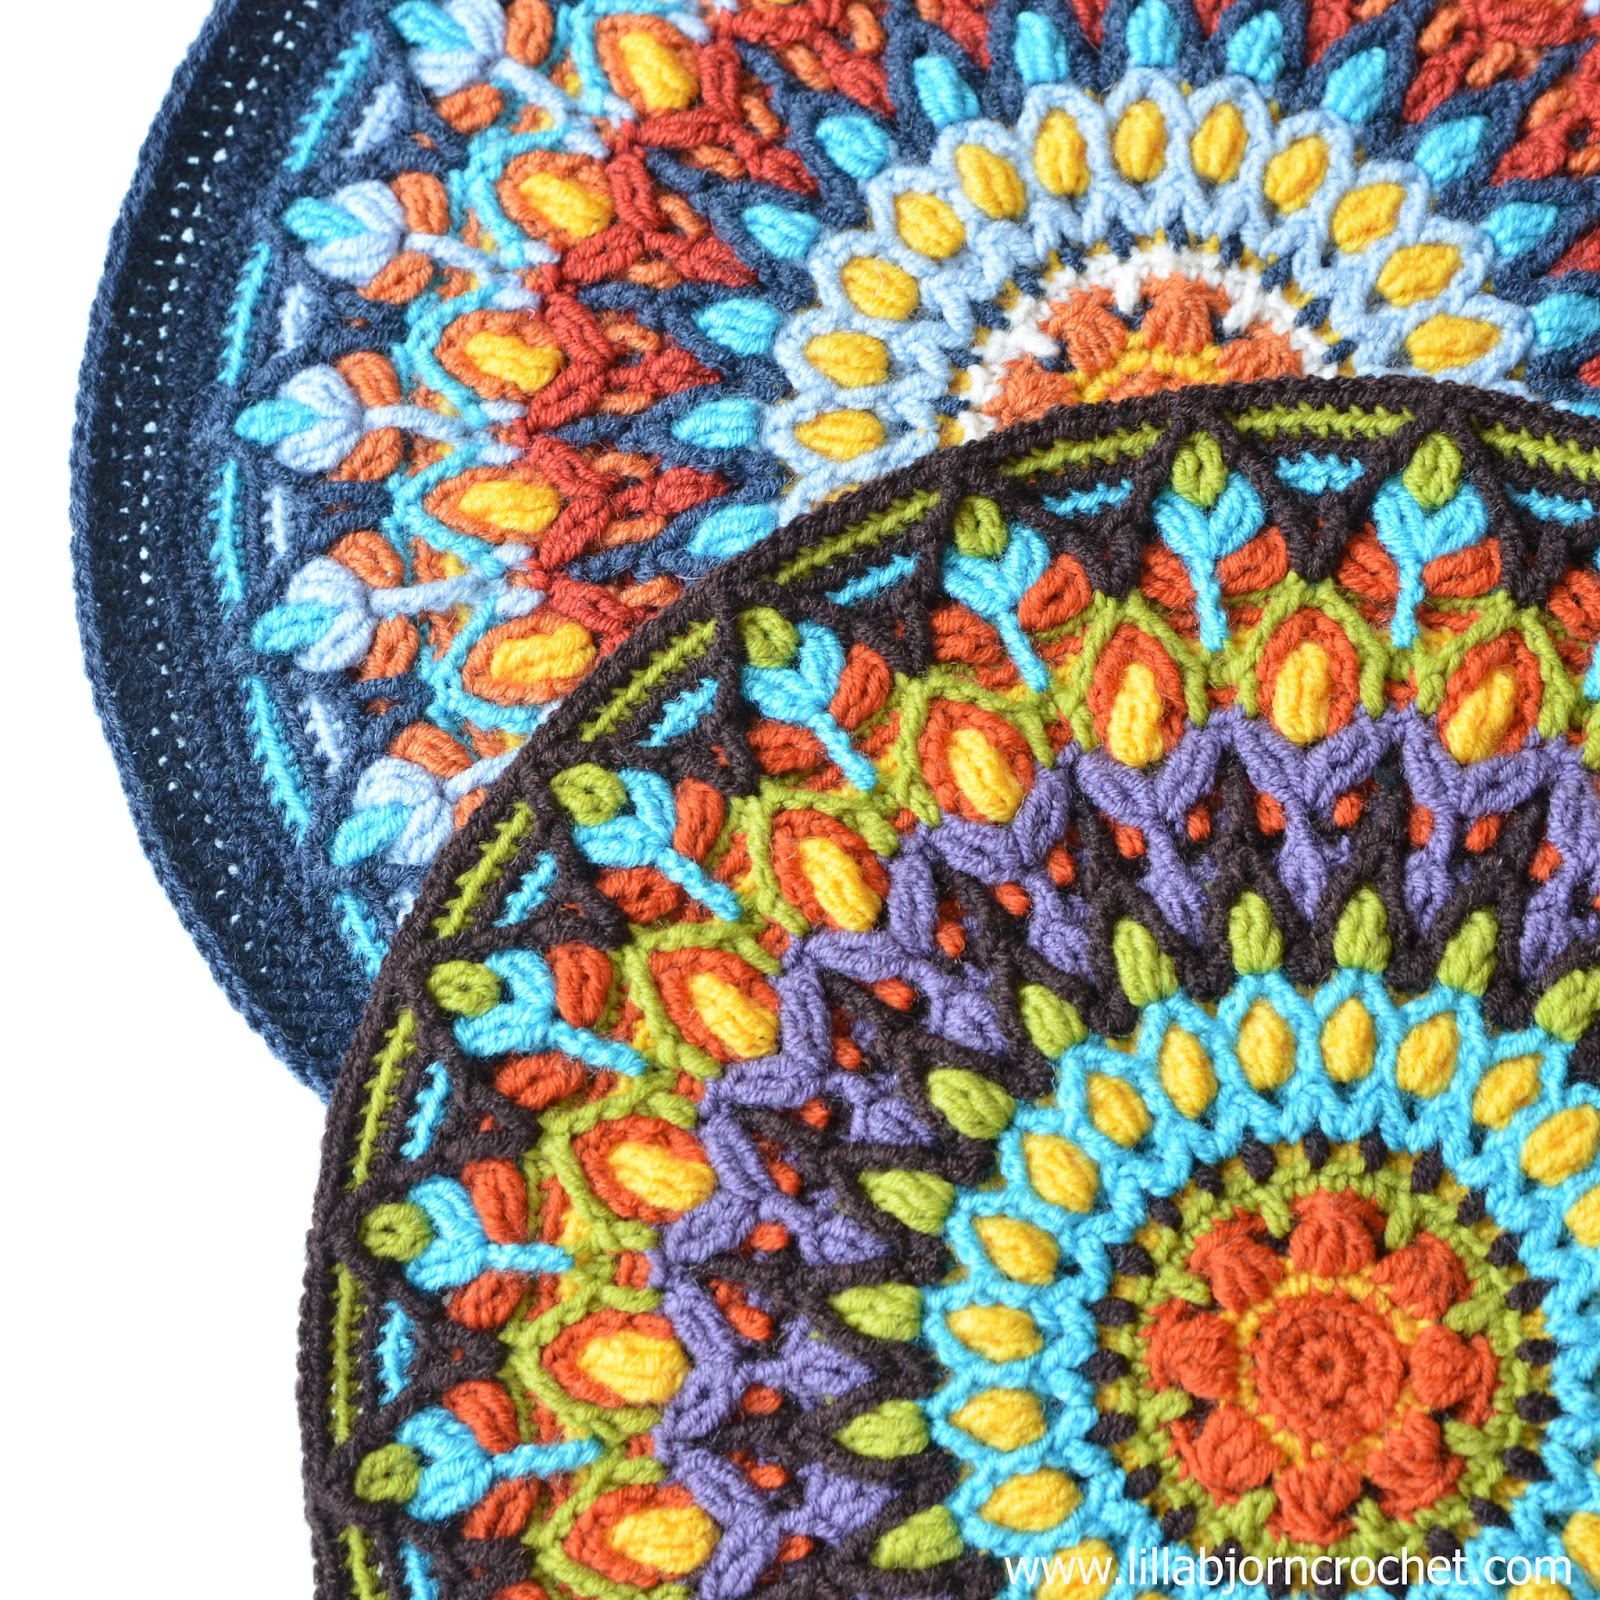 Crocheting In Spanish : Spanish Mandala. Overlay crochet pattern by Lilla Bjorn Crochet